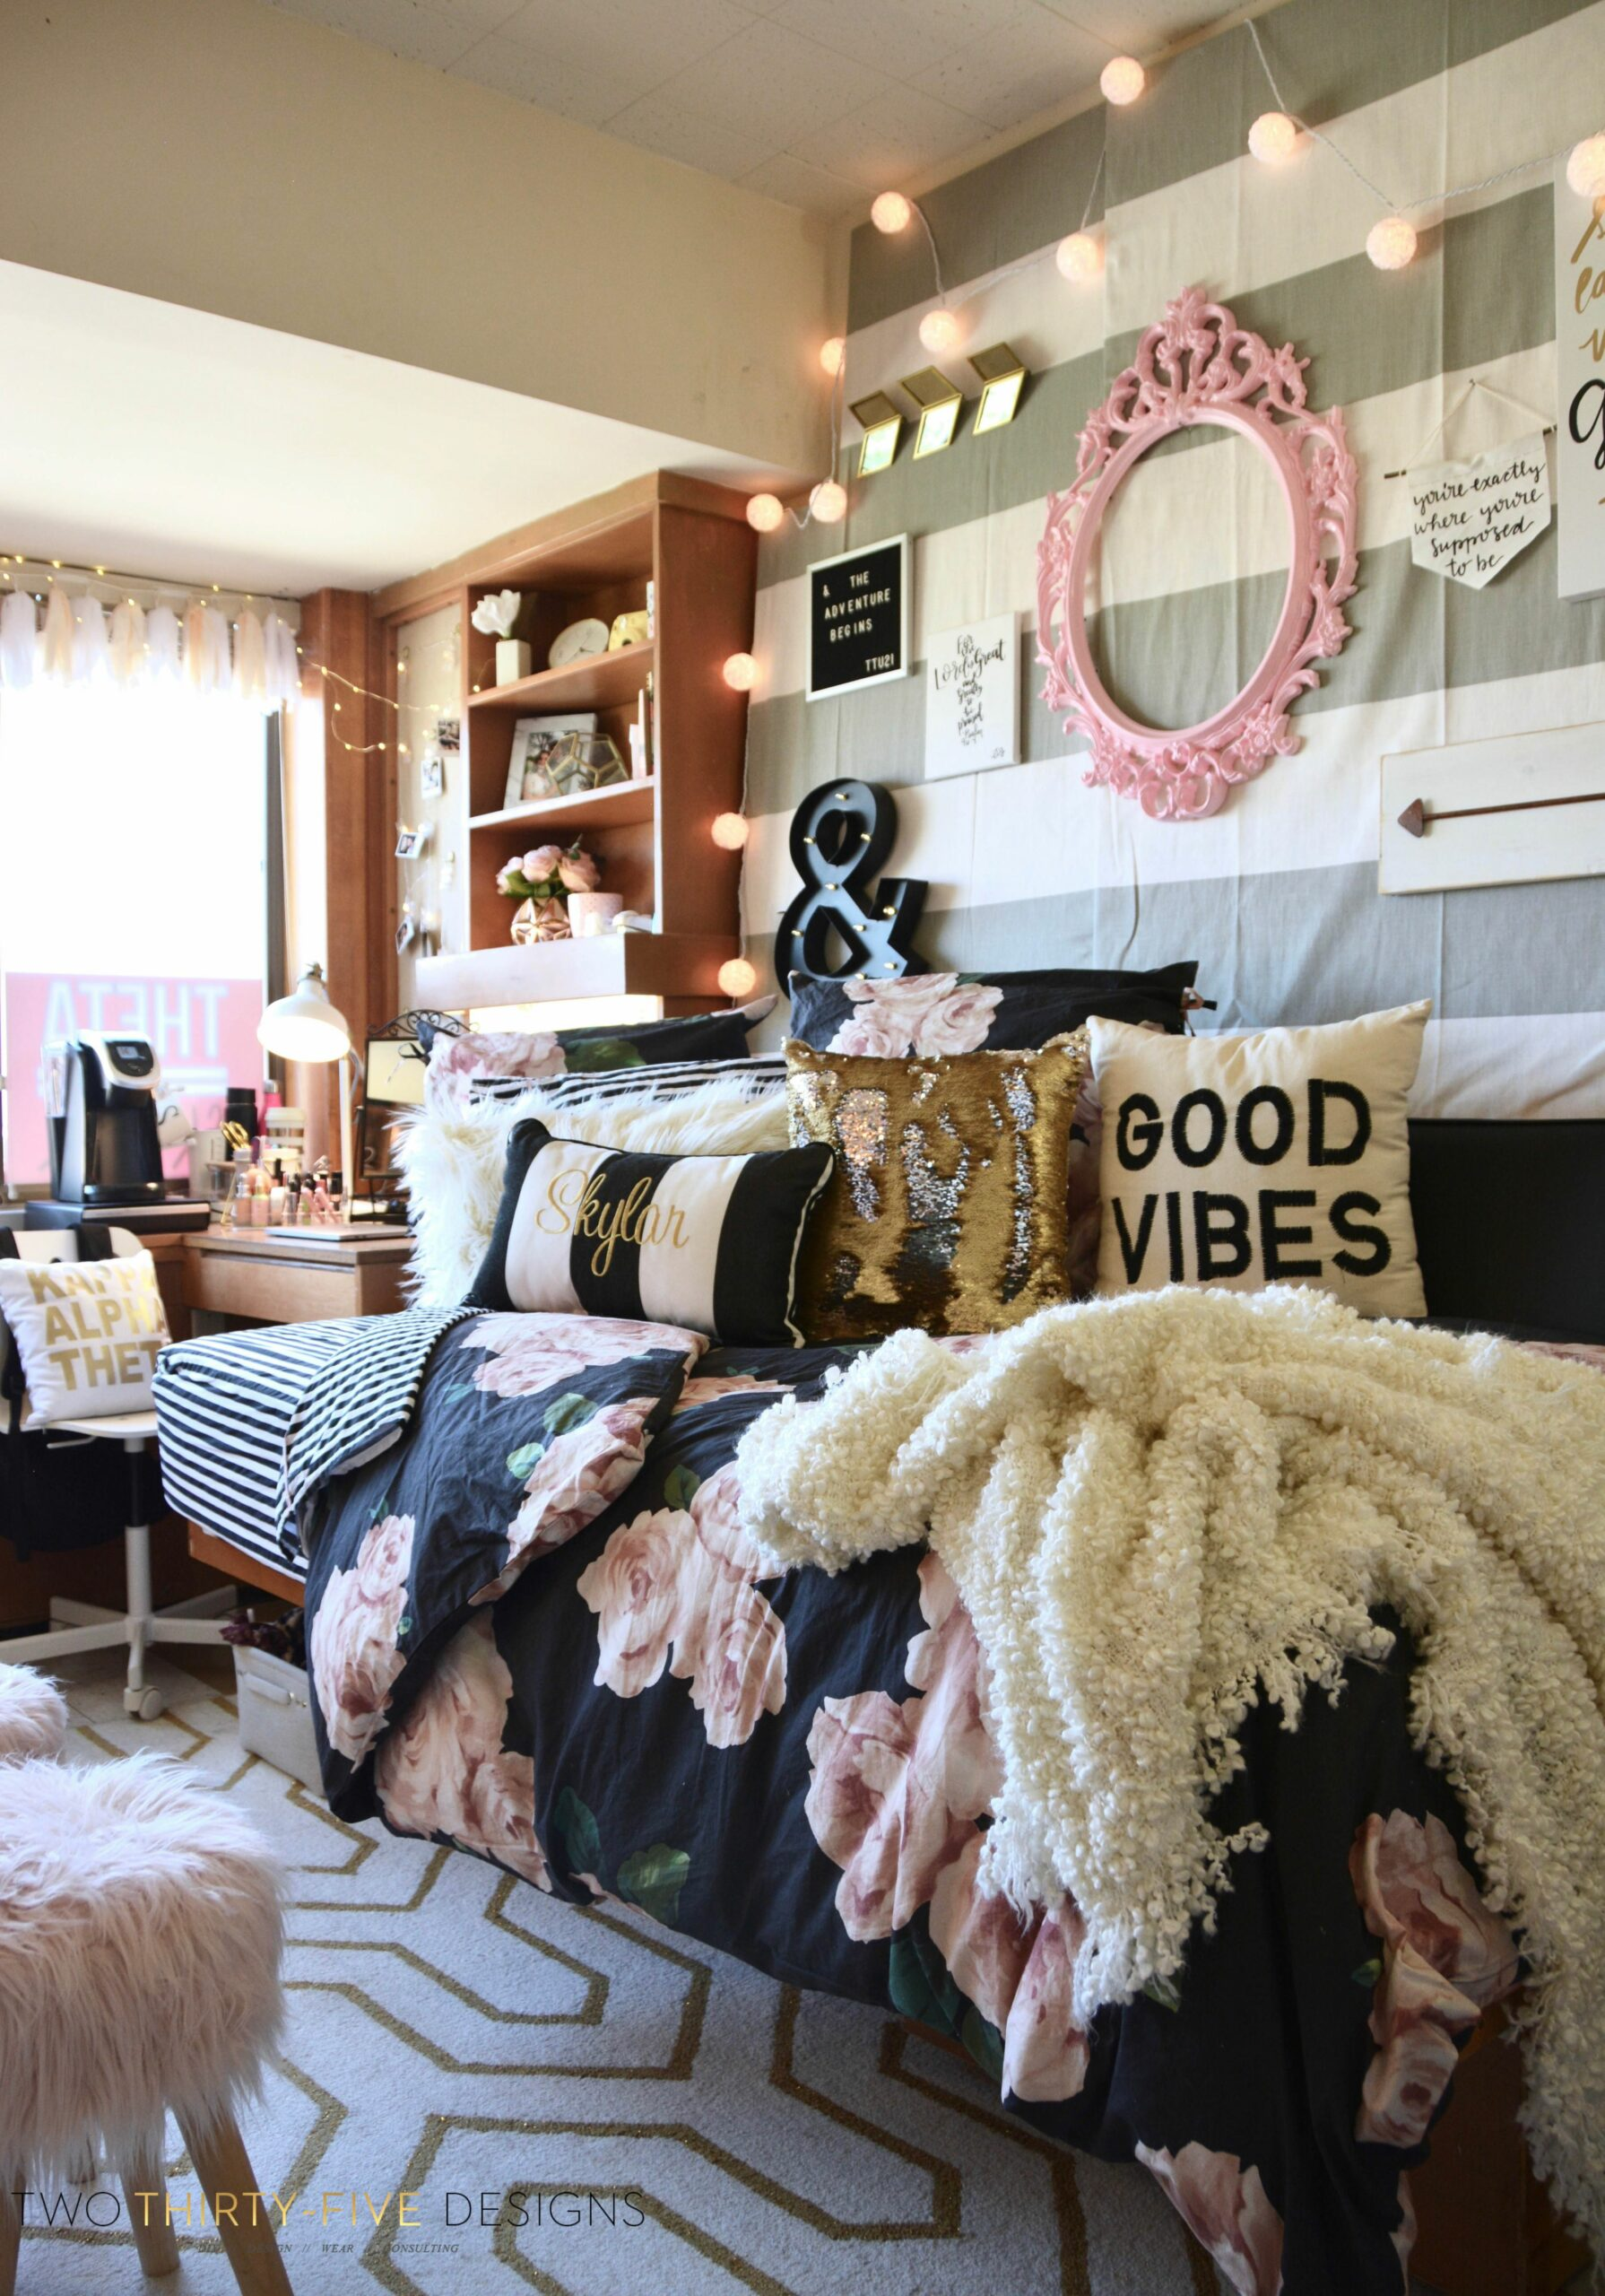 Texas Tech Chitwood Dorm Room Makeover - Two Thirty-Five Designs - dorm room design and decor unit